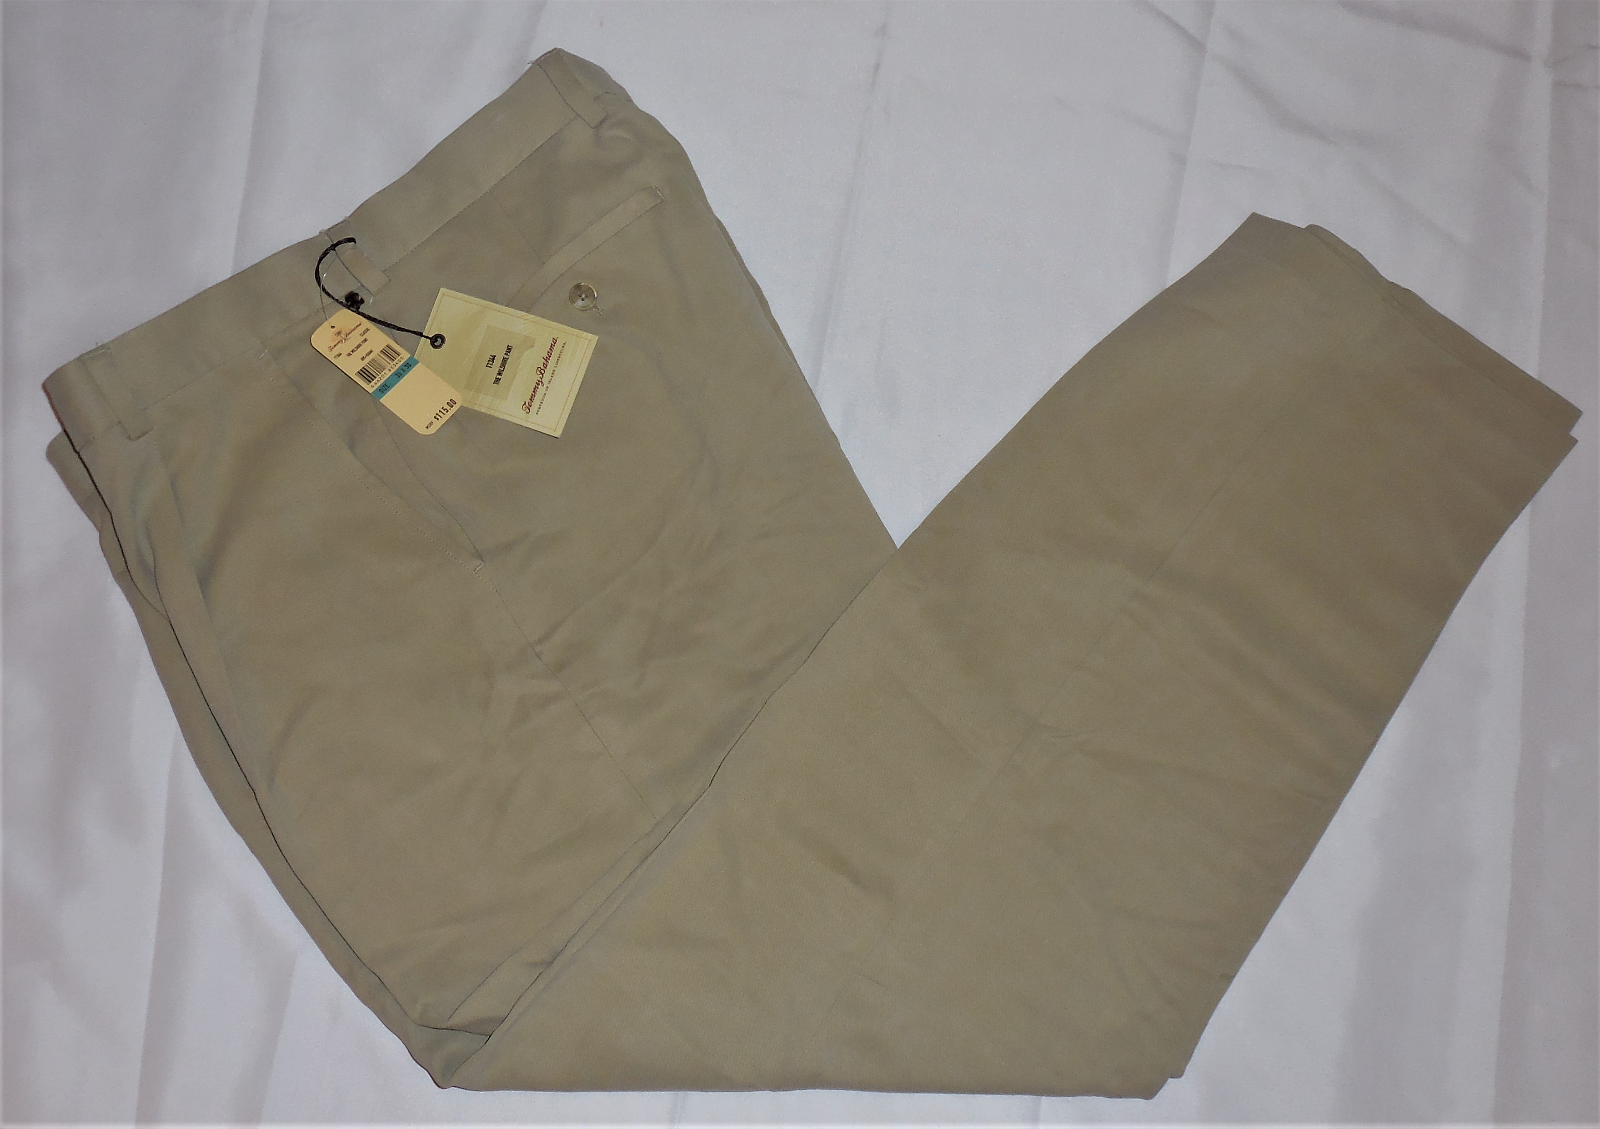 Primary image for Tommy Bahama T1344 The Wilshire Classic 100% Silk Pants Khaki Tan 35x30 NWT $115